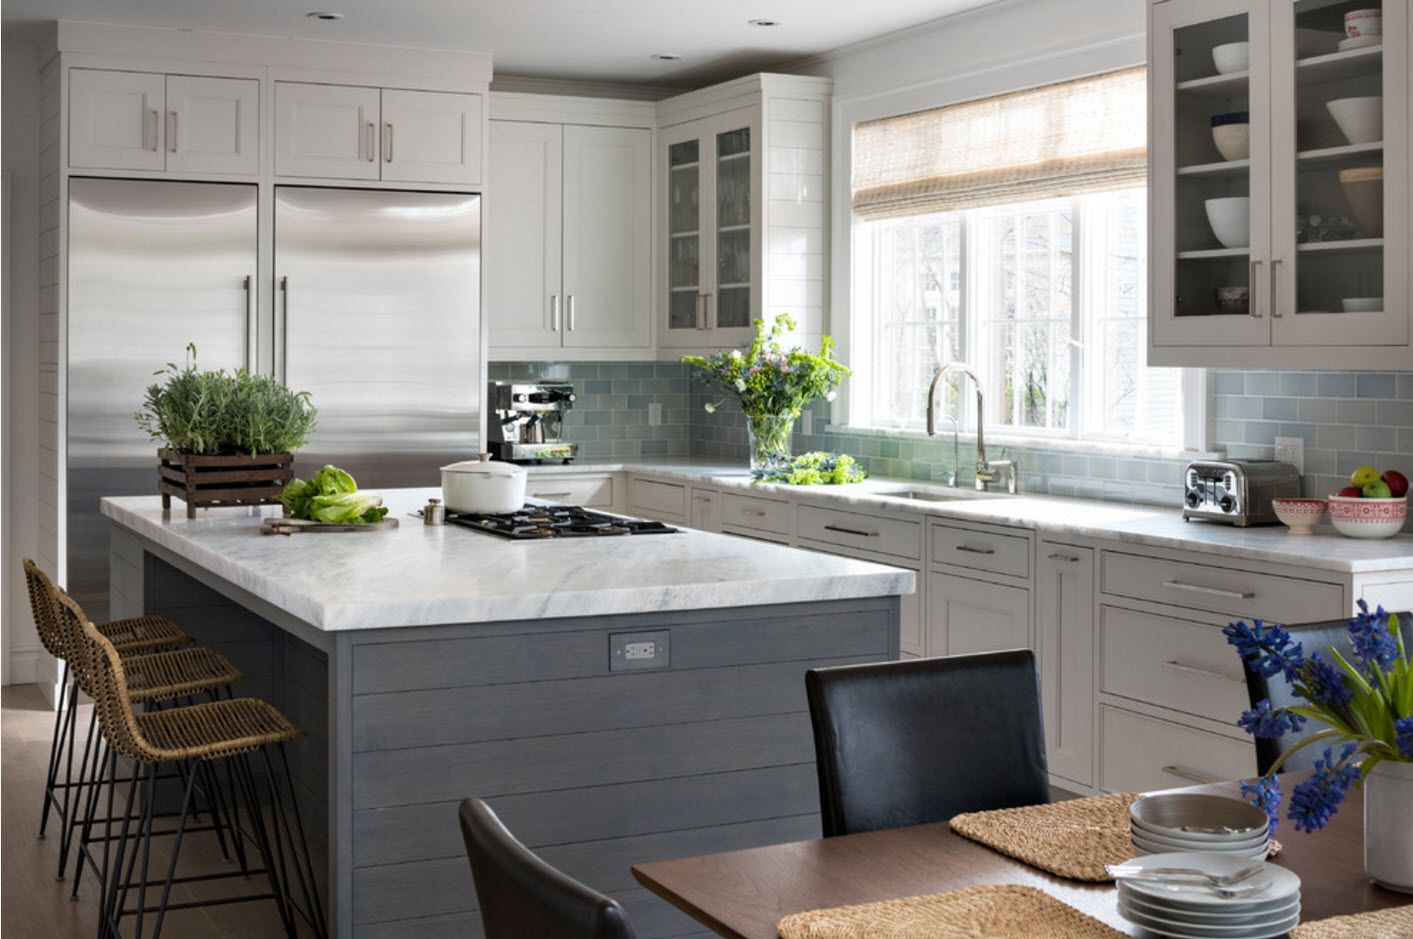 40 Square Feet Kitchen Modern Design Ideas & Layout Types. Dark bottom and light top of the furniture